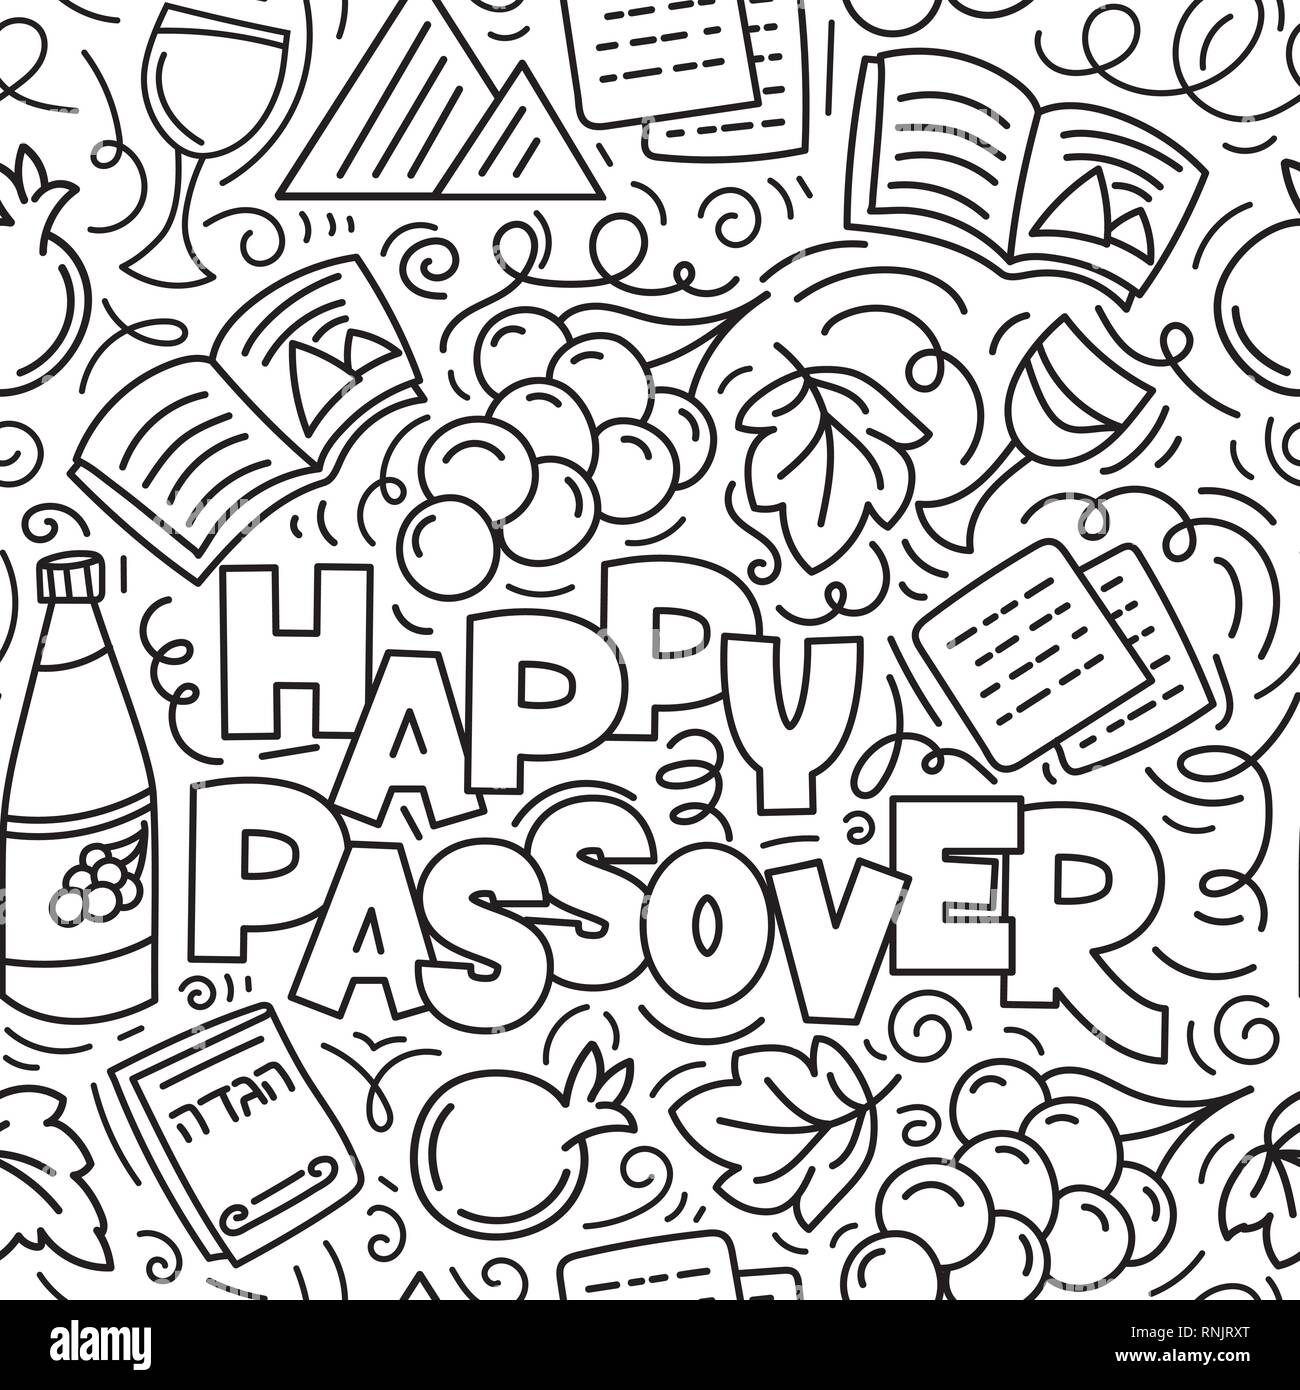 Pesach Book High Resolution Stock Photography And Images Alamy